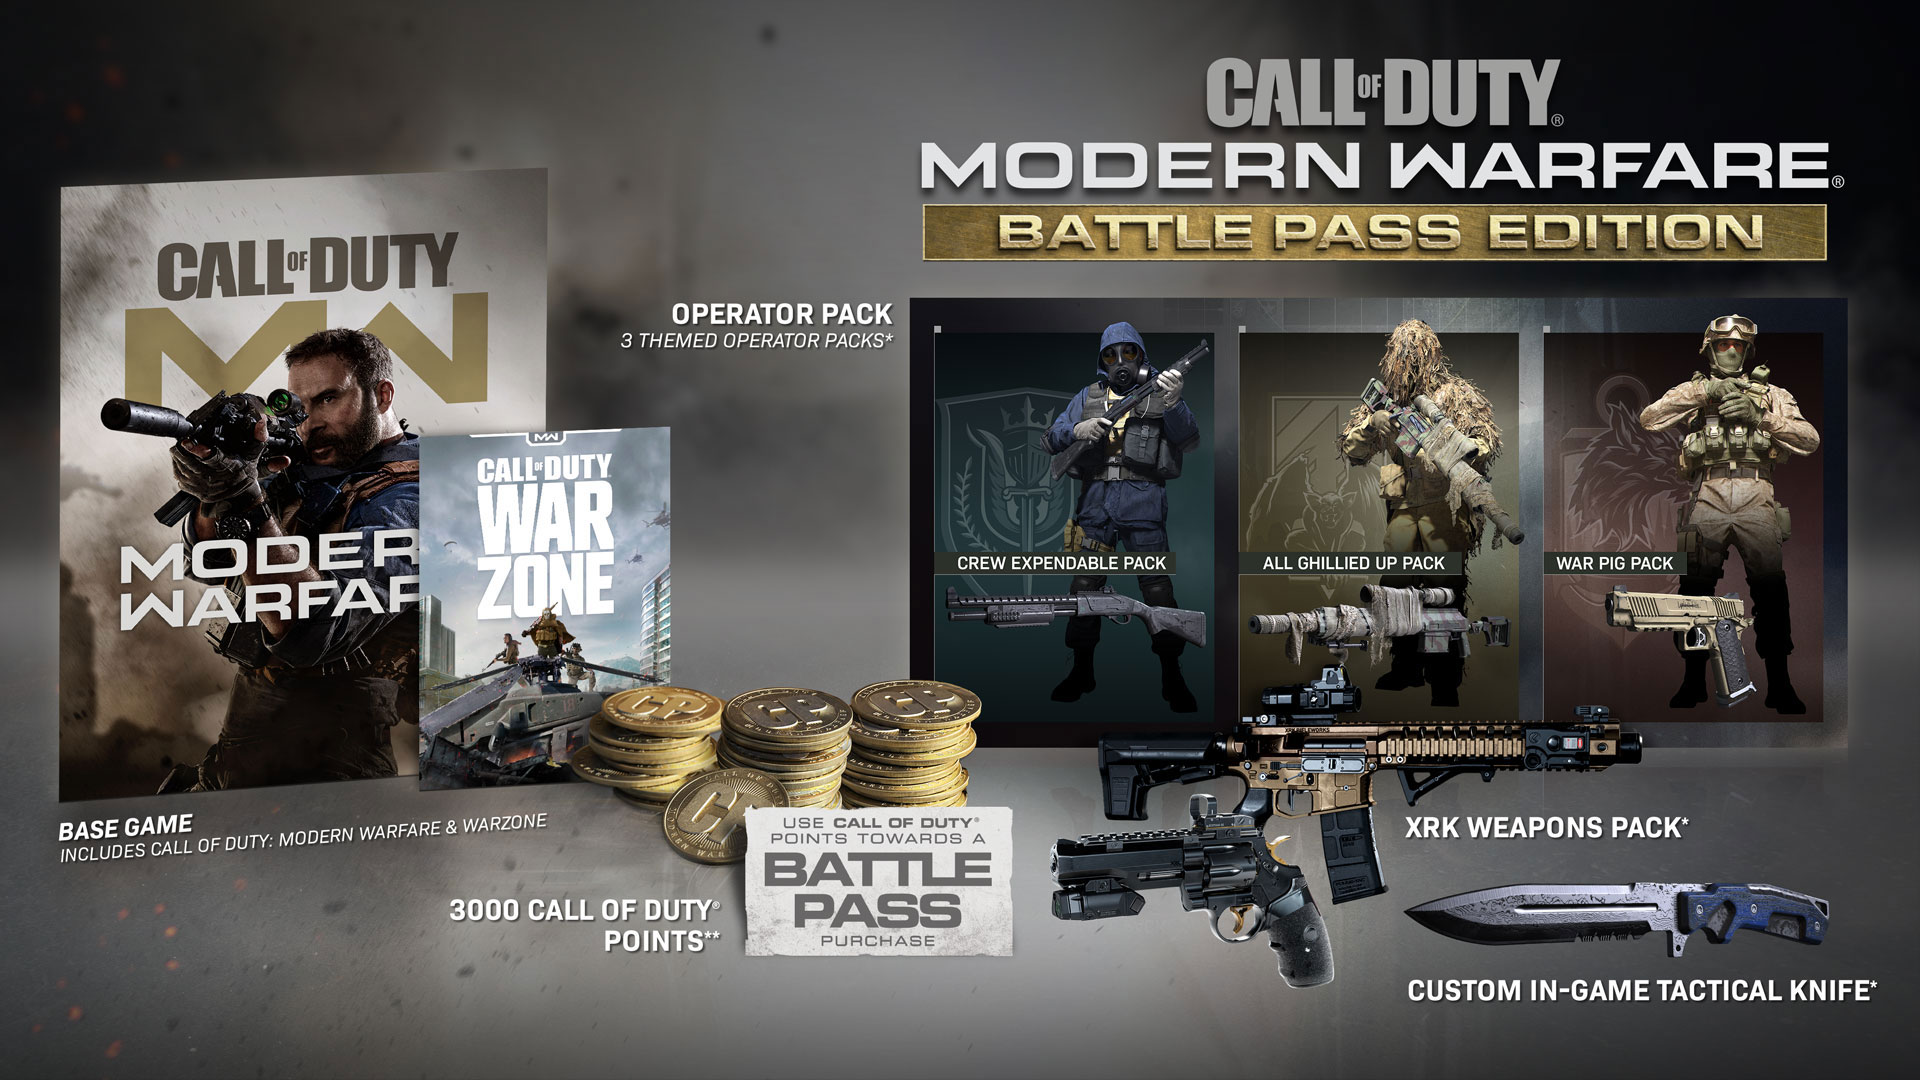 Warzone Battle Pass Edition Upgrade Is It Worth It Contents Call Of Duty Modern Warfare Gamewith